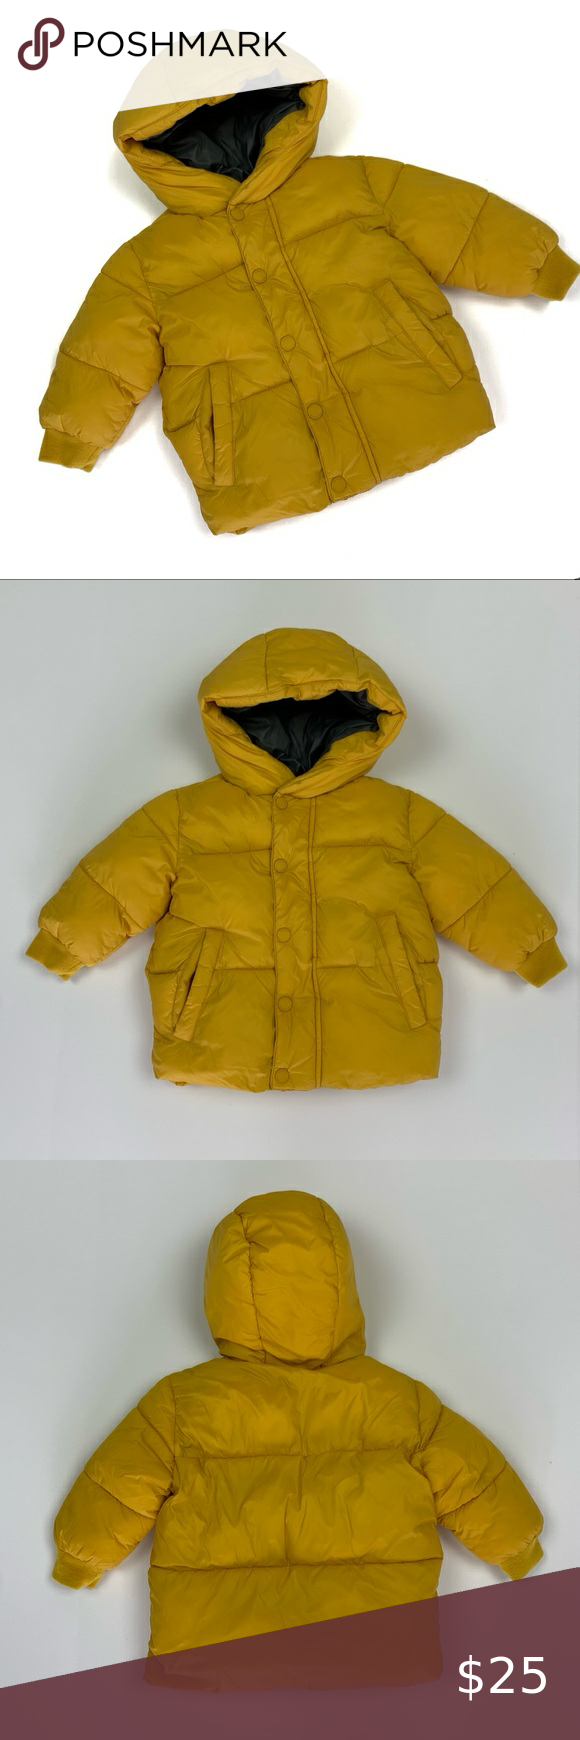 with patch yellow size 12 months boy Jacket